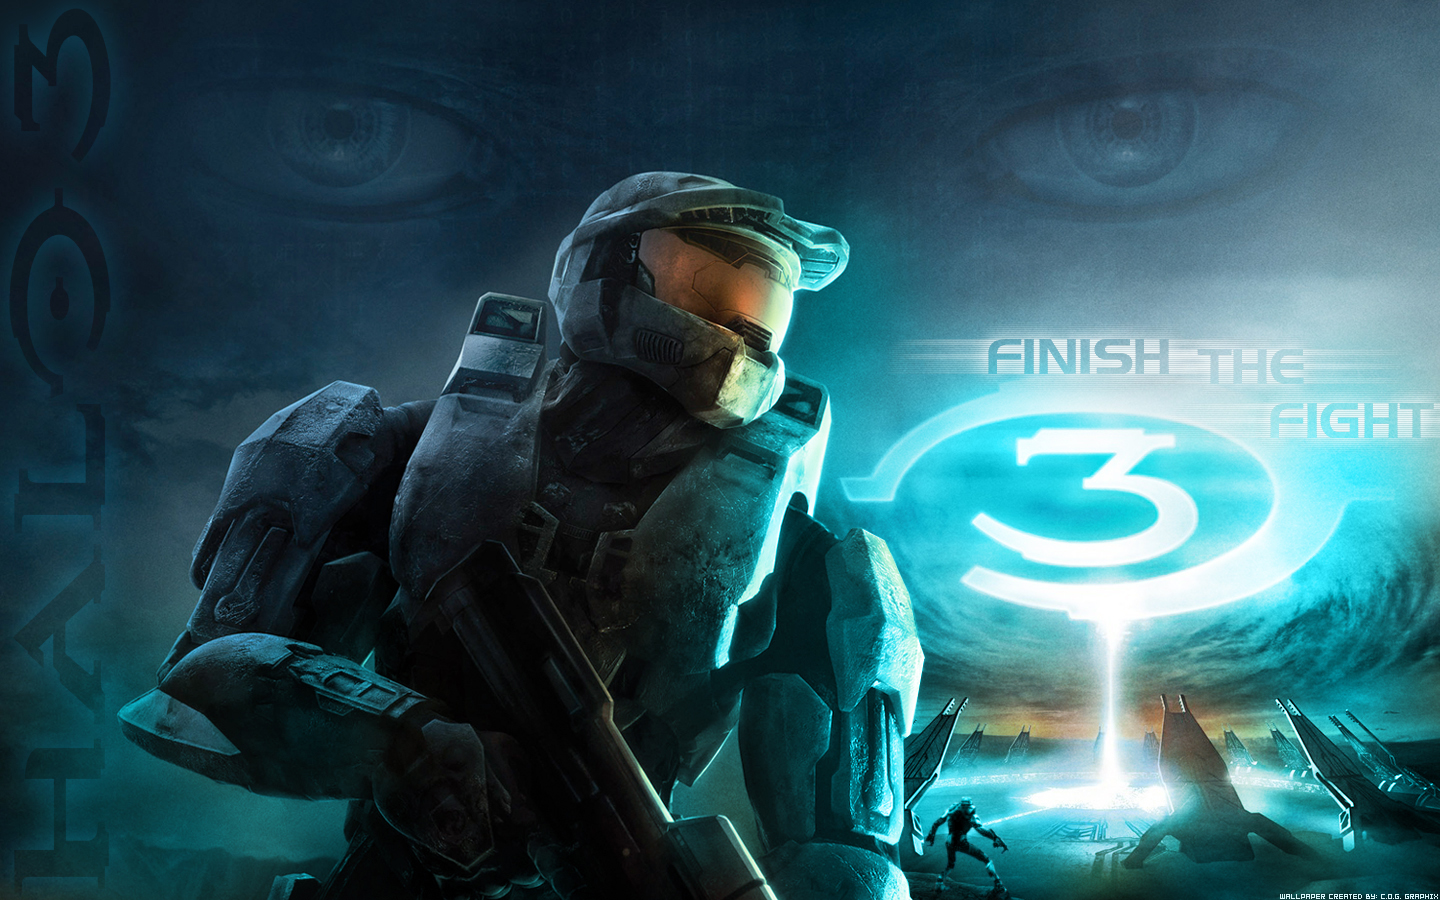 halo 3 wallpaper fan artc0g-graph1x on deviantart